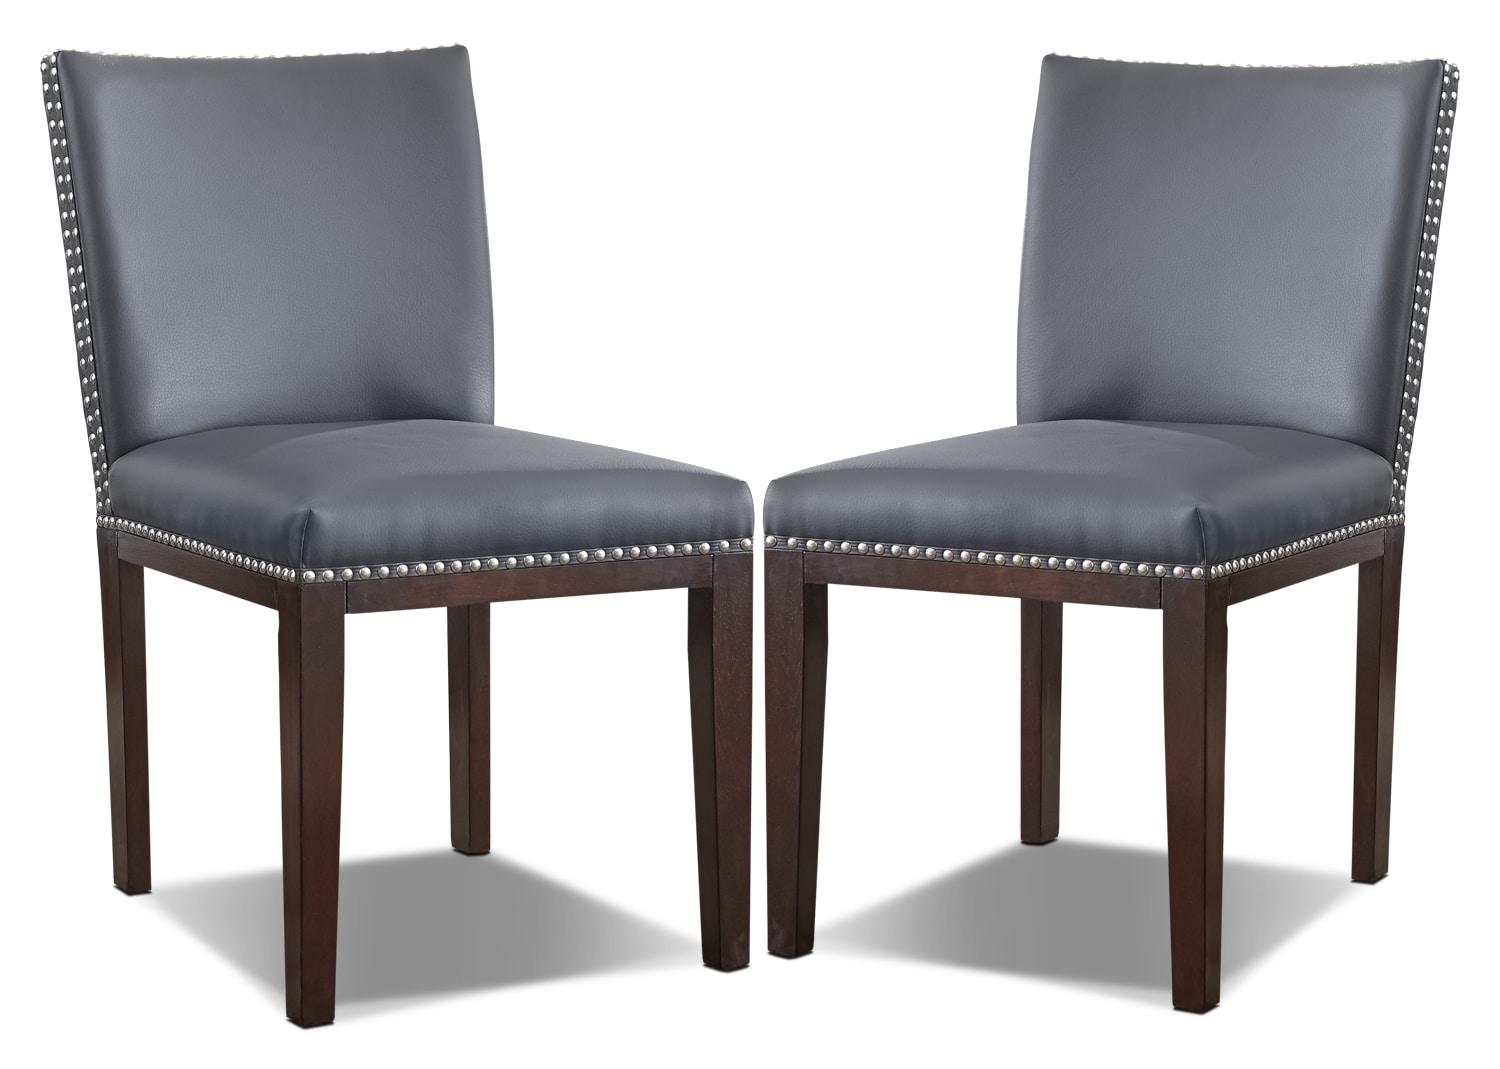 Tiffany Dining Chair, Set of 2 – Grey